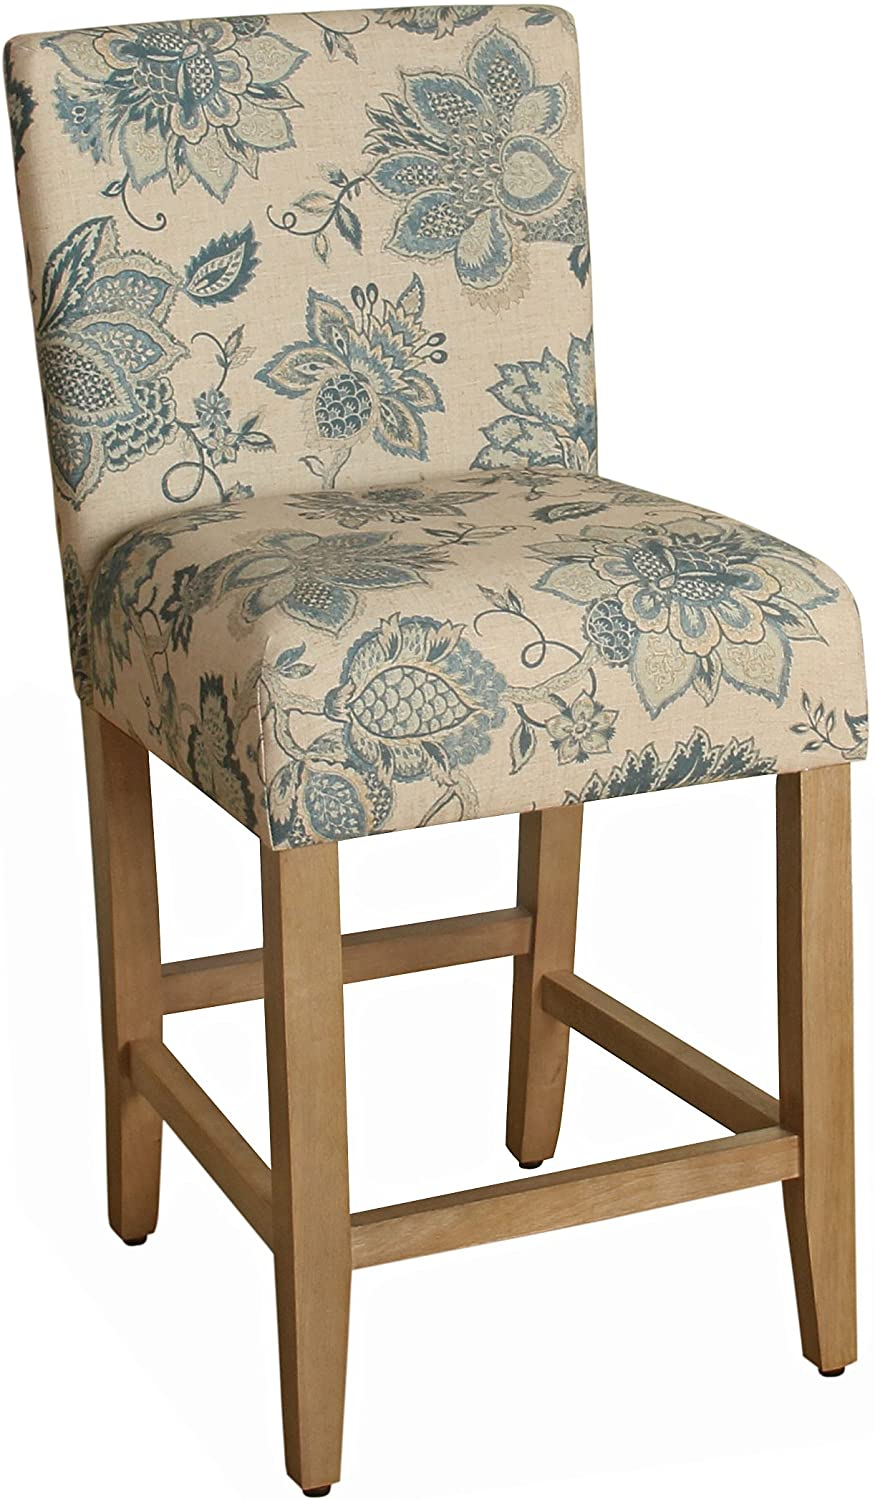 HomePop by Kinfine Fabric Upholstered Counter Height Barstool - 24-inch, Blue and Tan Jacobean